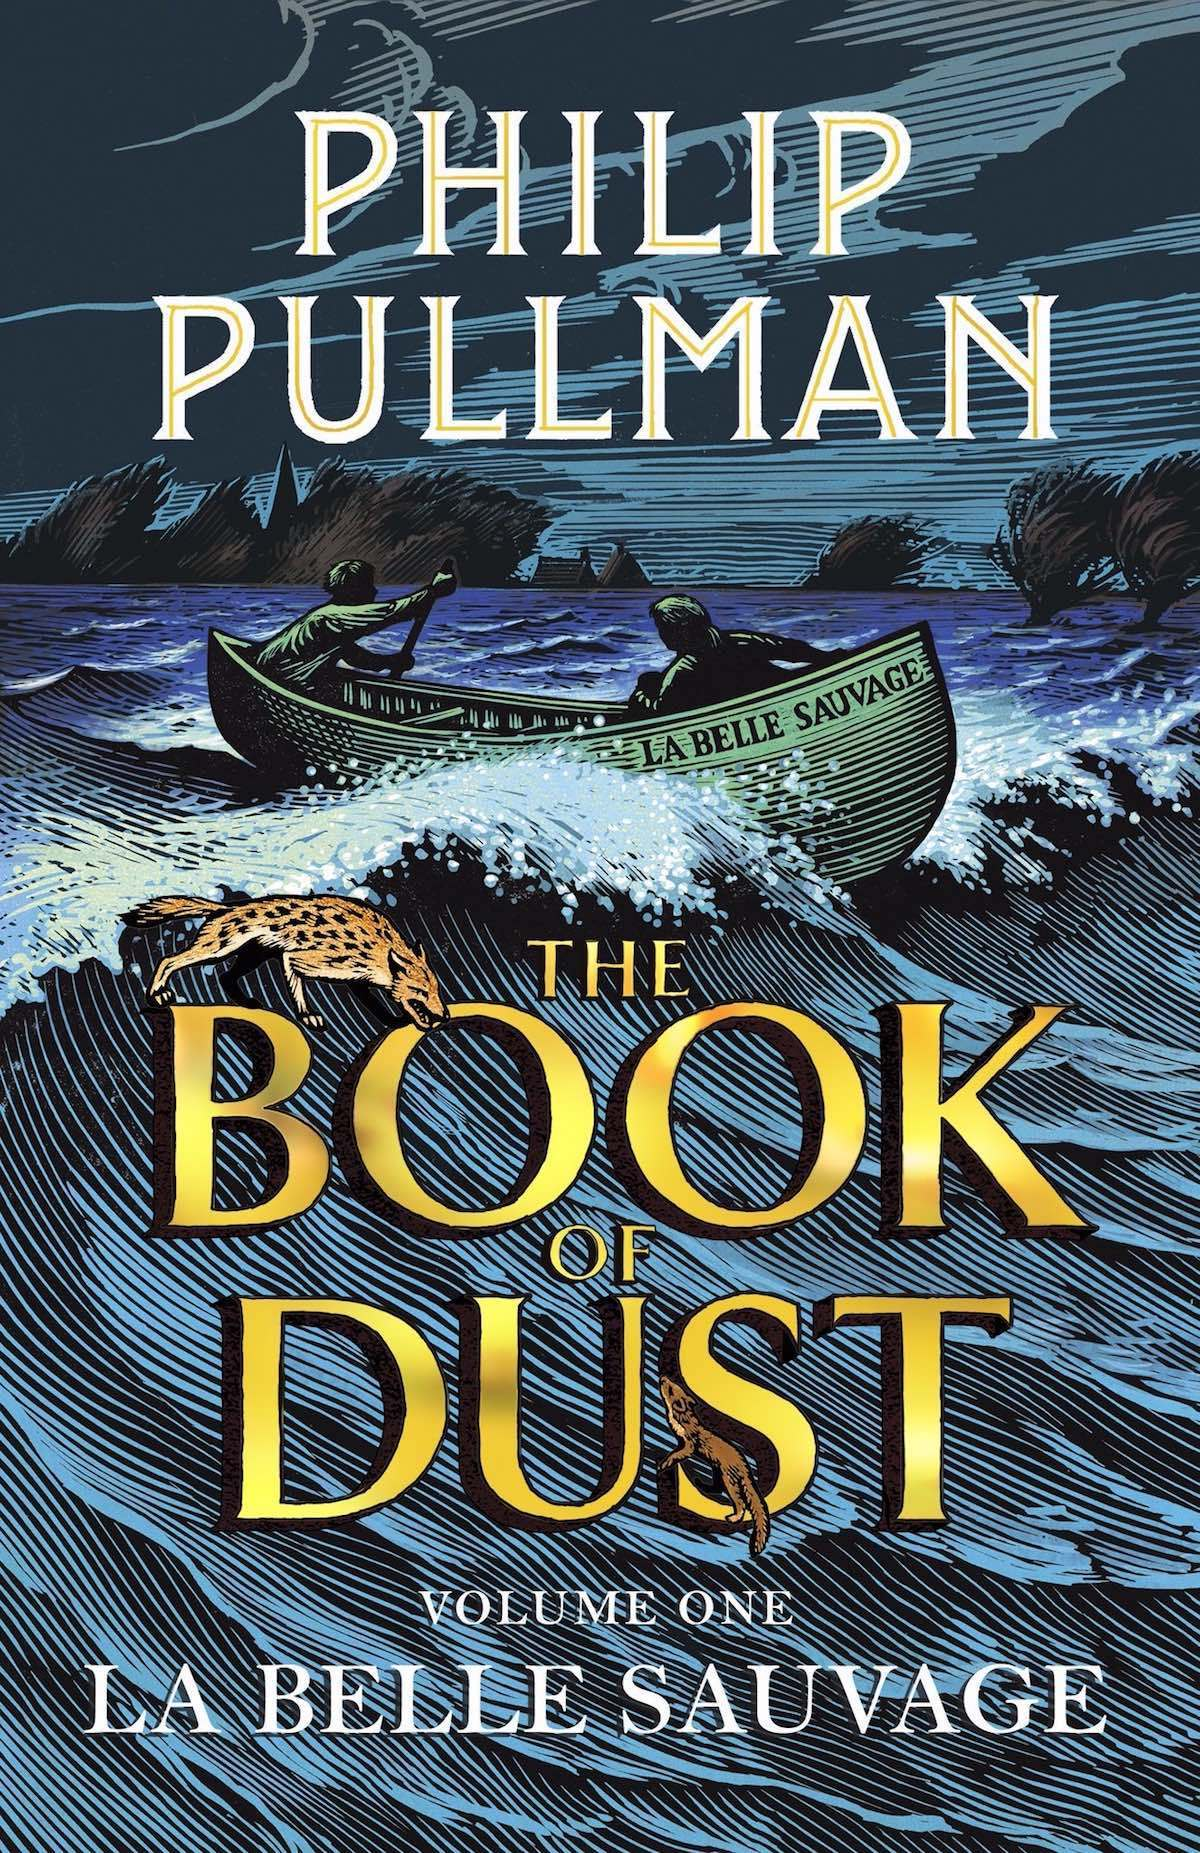 La Belle Sauvage: The Book of Dust by Philip Pullman